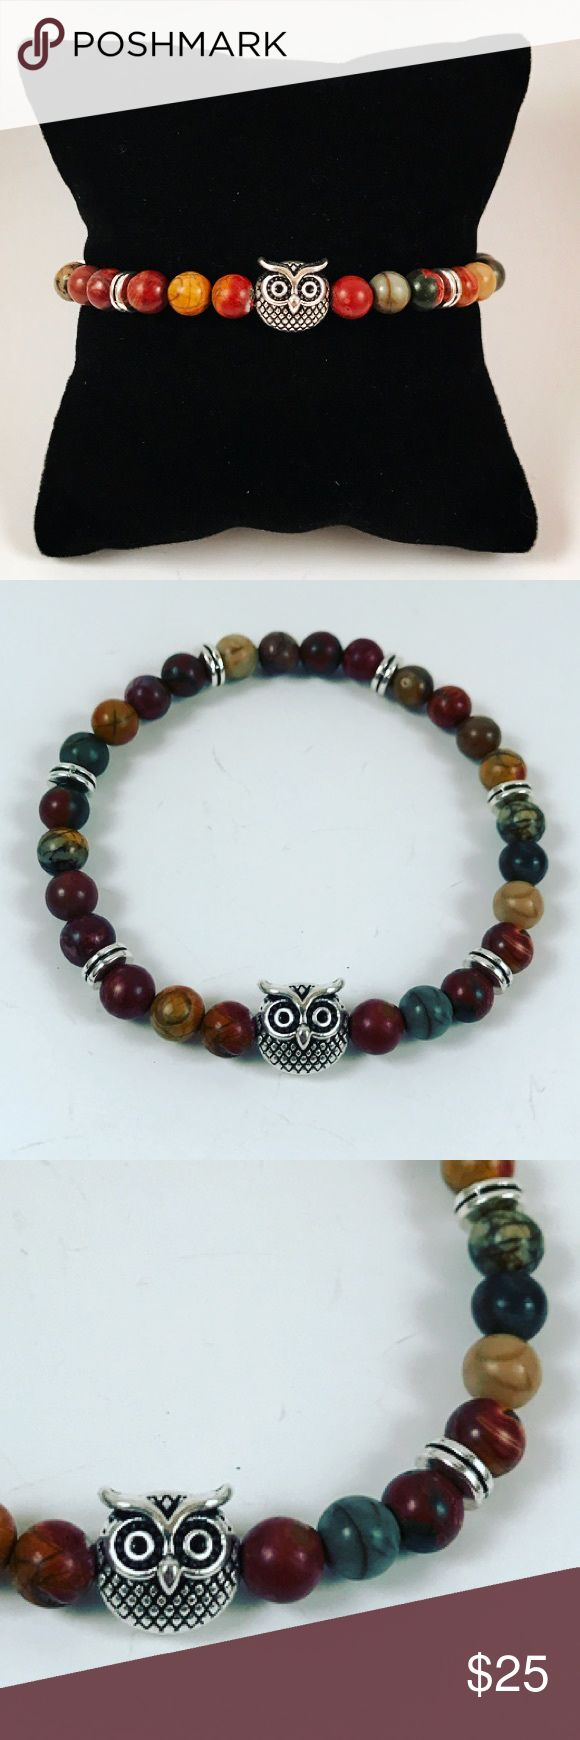 Women jasper beaded bracelet with owl charm Women beaded bracelet. Fits most , 5.5 to 7.5 inch wrist. Handmade by me , never worn by anyone. Made with natural picture jasper beads .Tibetan silver Owl charm and deco charms. I ship fast!!✈️ Bundle and save! ( 10 % off bundles) REASONABLE offers considered. Any questions let me know! NO PAYPAL ! Jewelry Bracelets